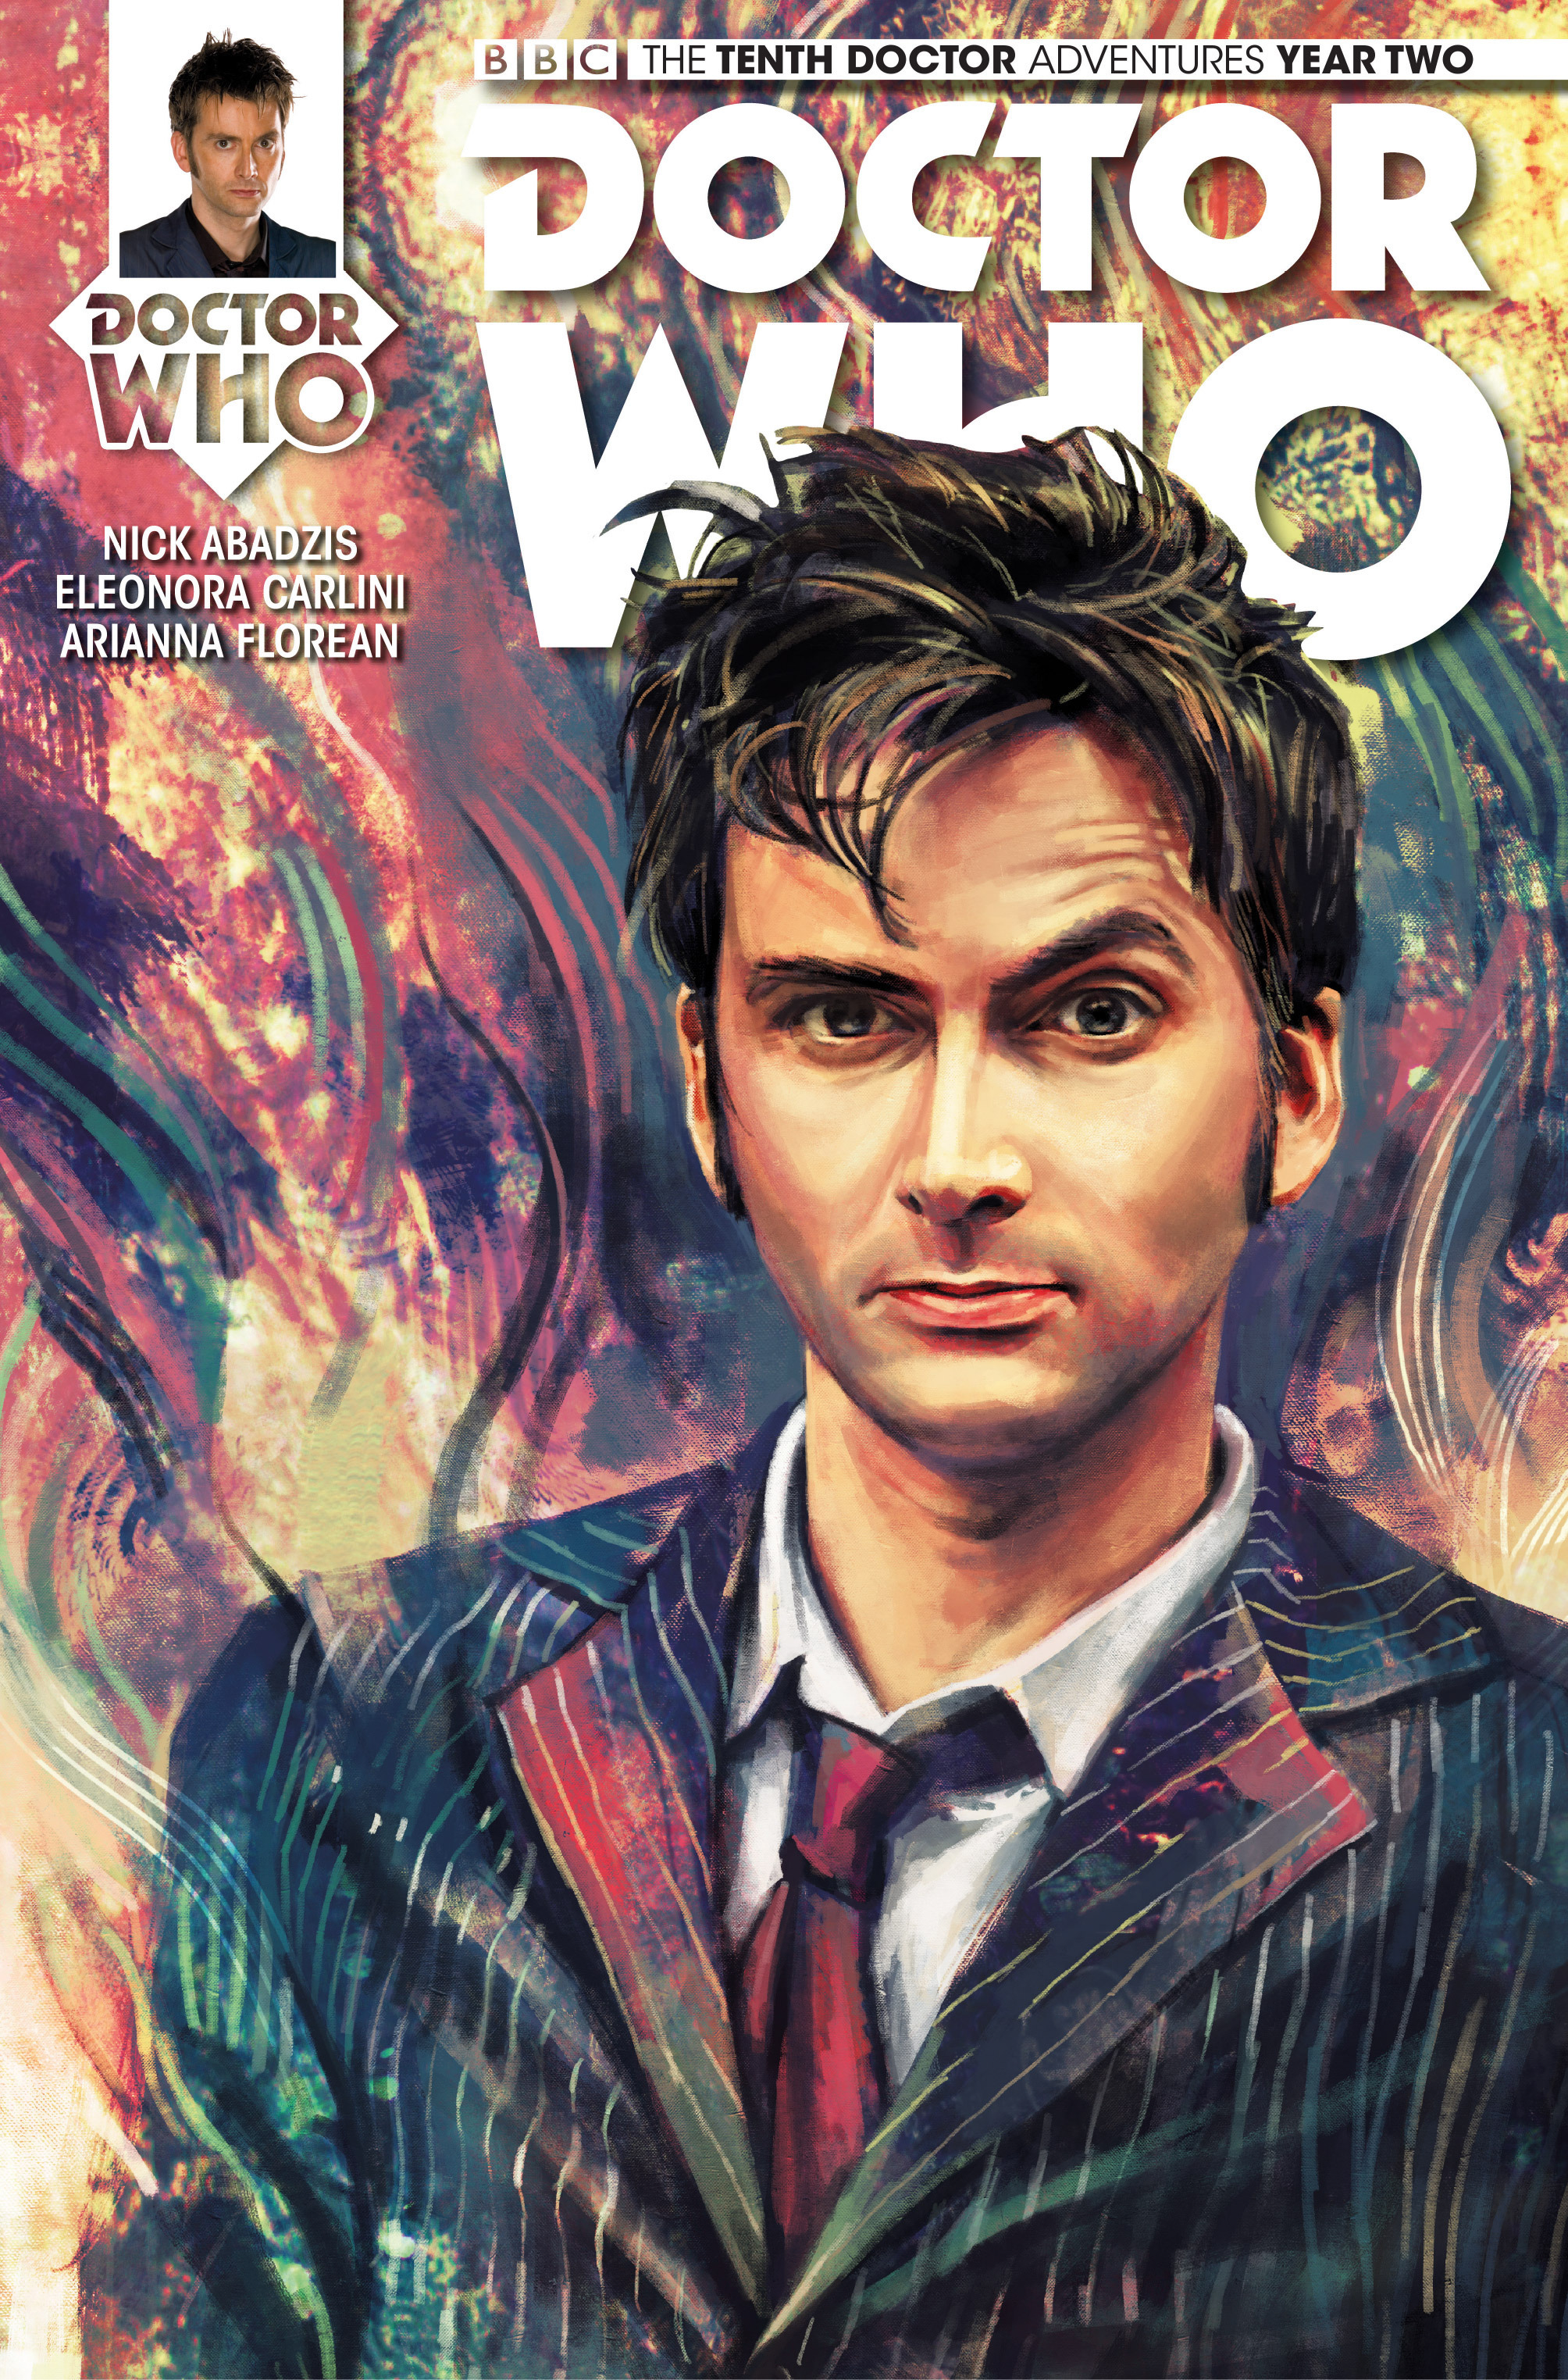 Doctor Who: The Tenth Doctor Year Two 6 Page 1